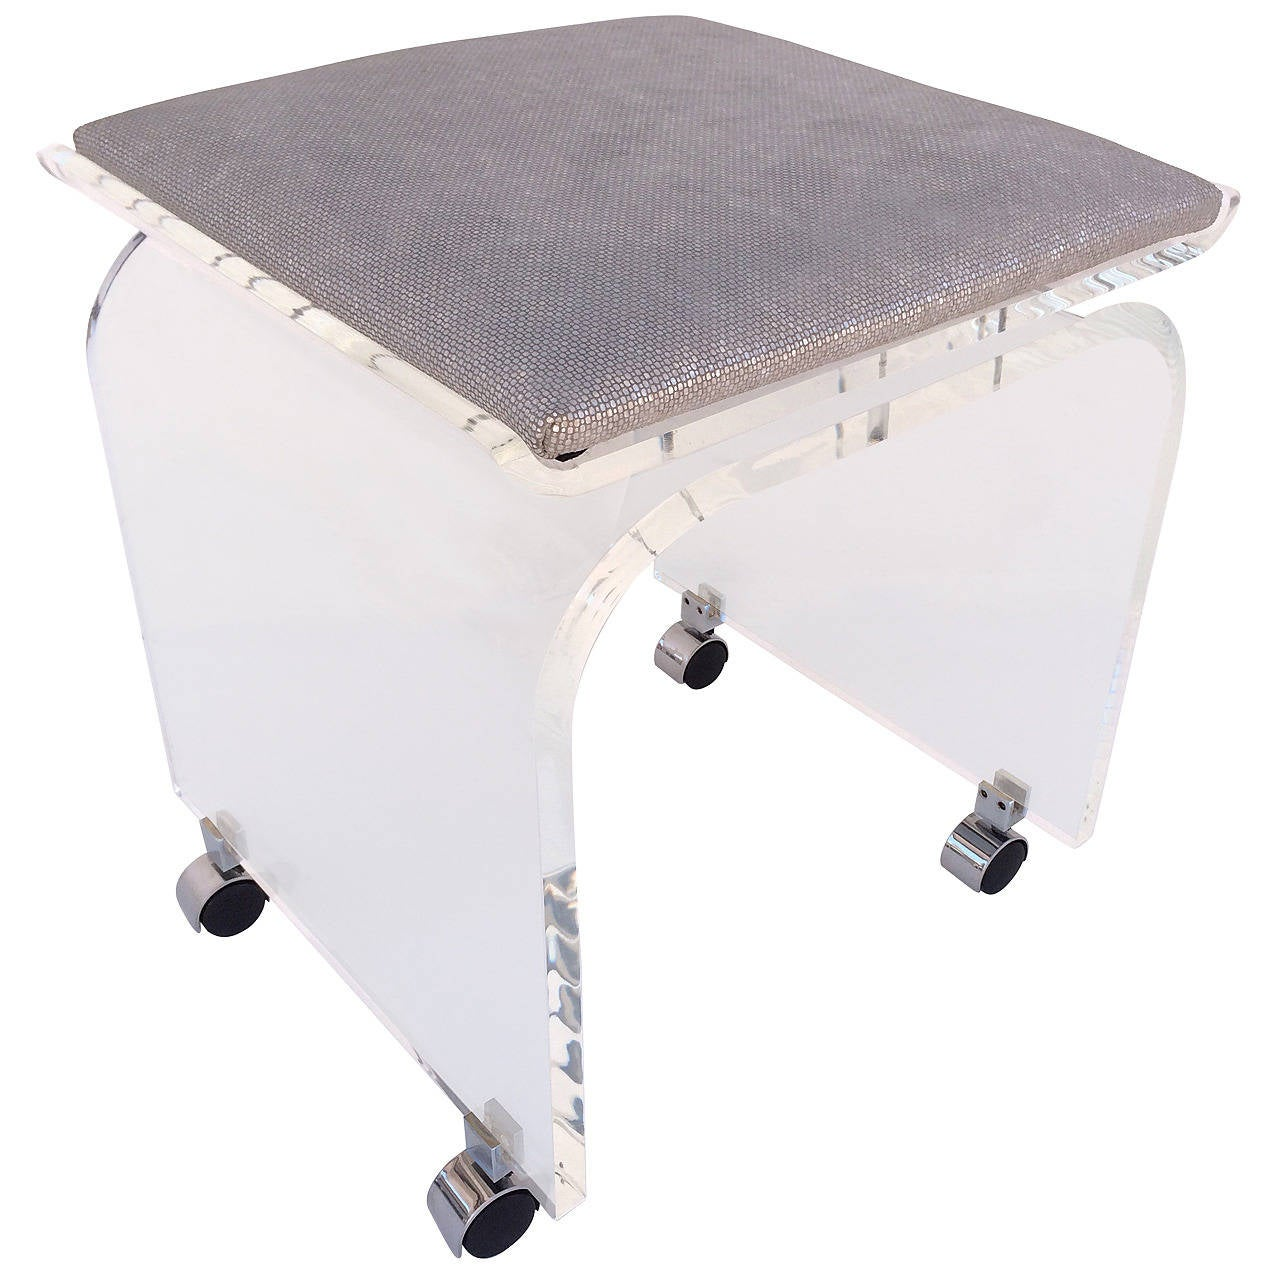 Waterfall acrylic vanity stool on wheels designed by charles hollis jones at 1stdibs - Vanity stool with wheels ...